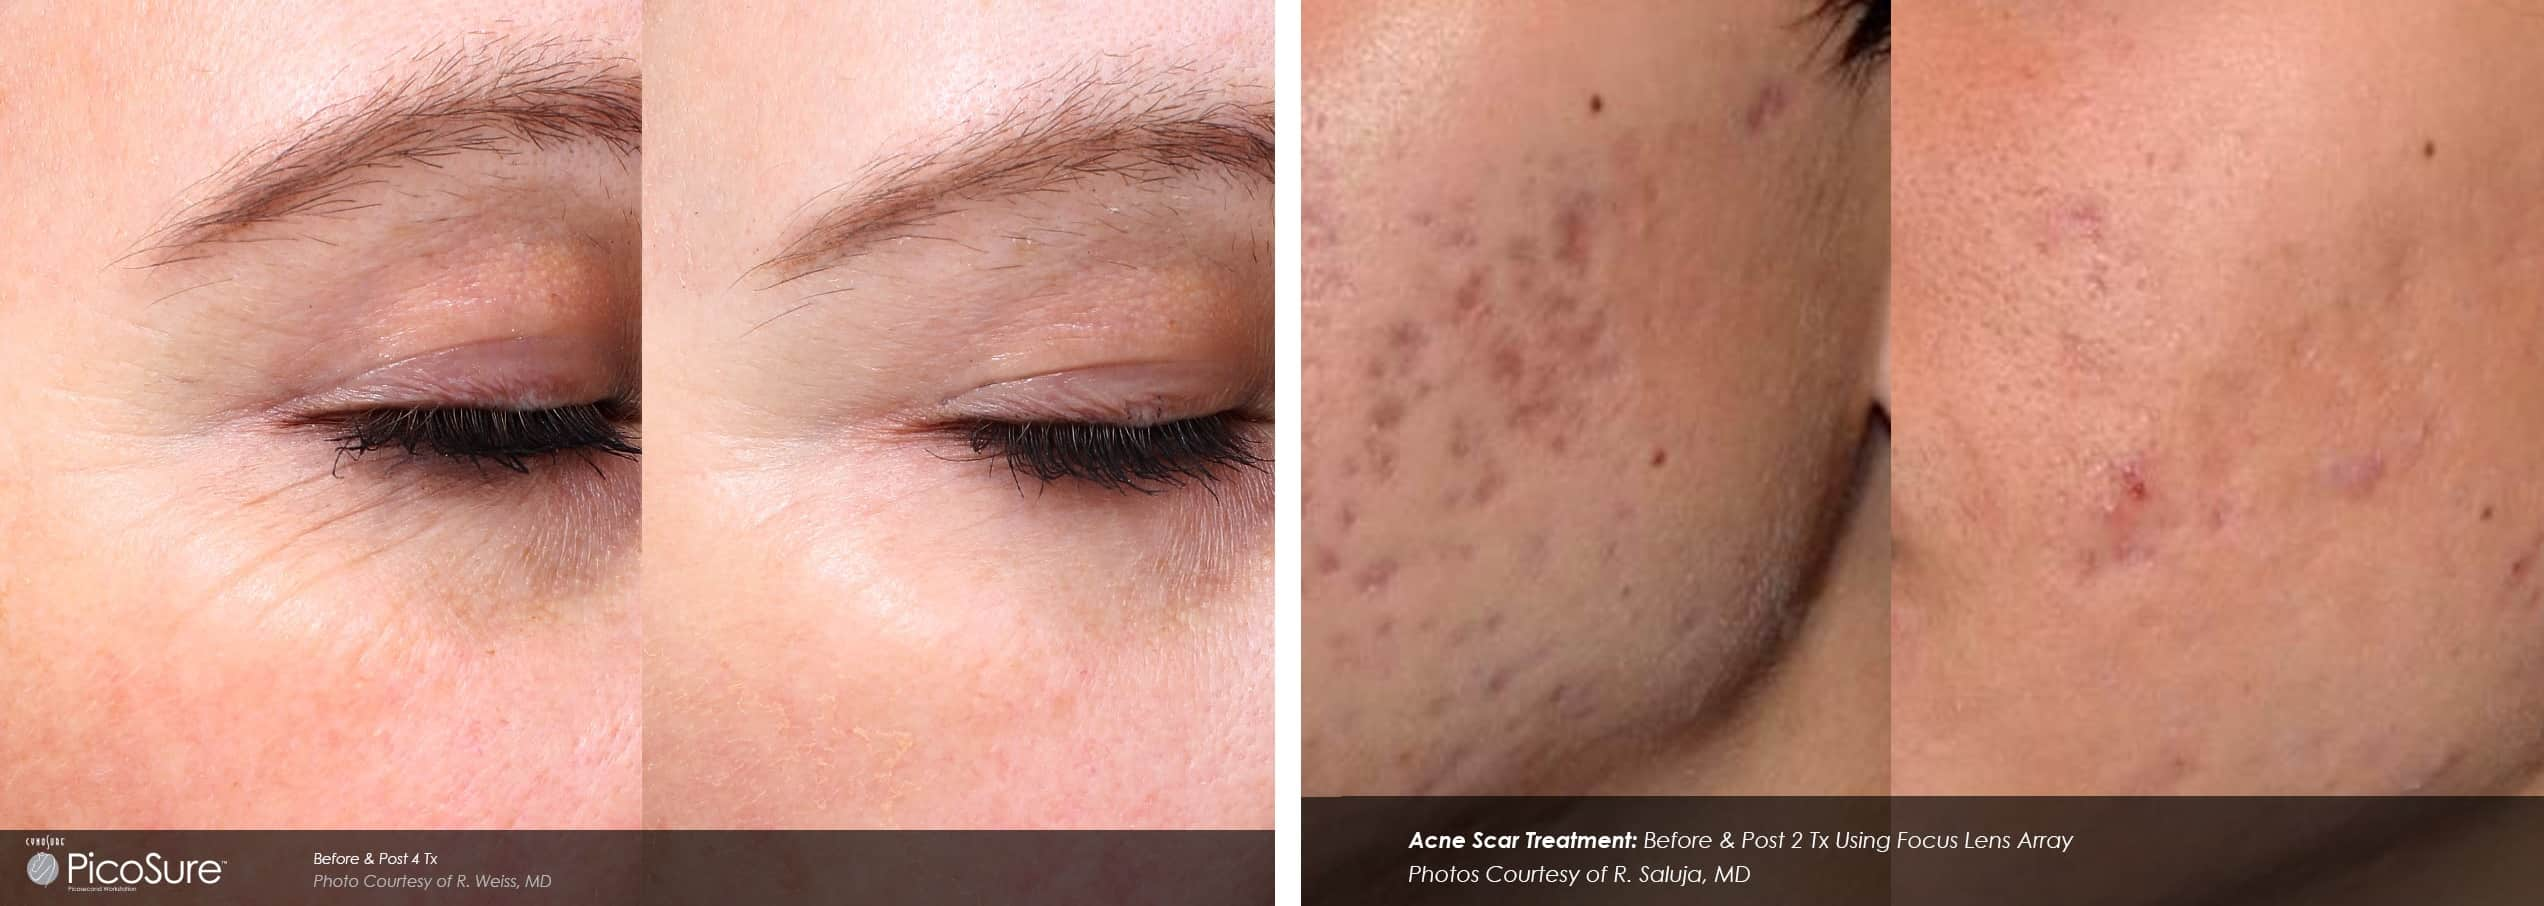 Before & After photo - acne scars significantly reduced by PicoSure